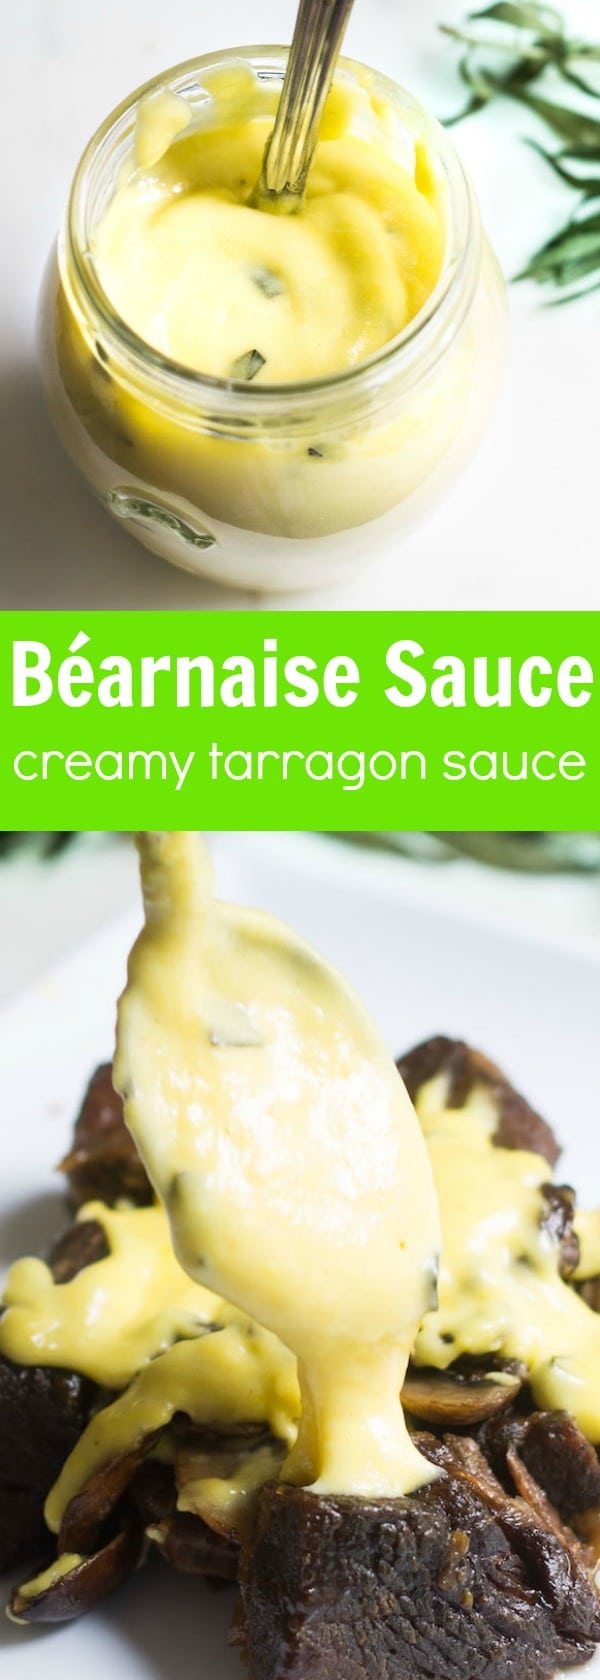 Béarnaise Sauce: a creamy, tarragon-flavored French sauce that's a dream over meat, poultry, and fish! Recipe via MonPetitFour.com